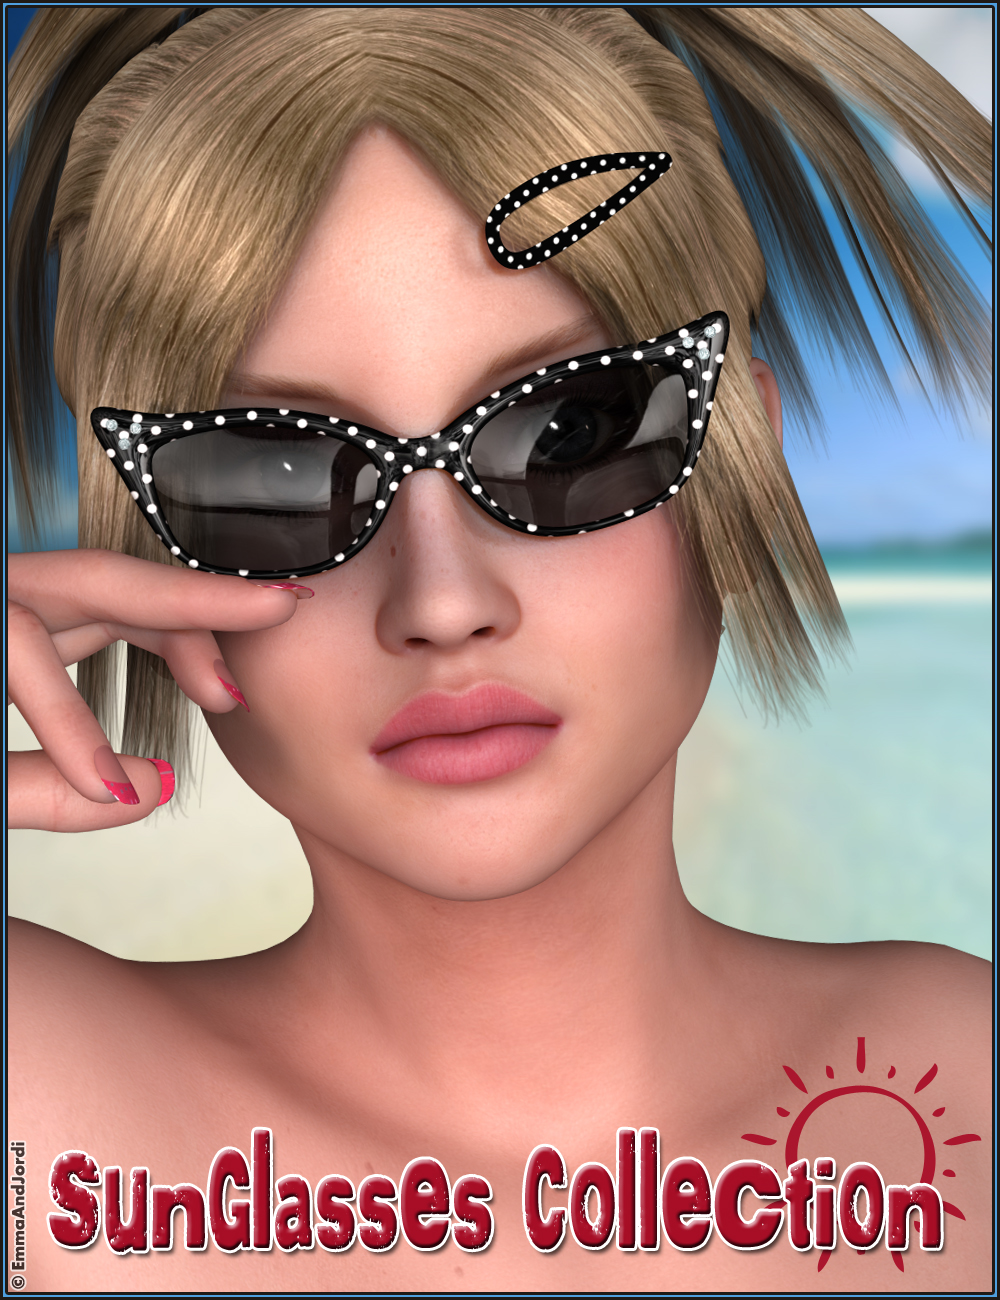 Sunglasses Collection For Any Figure by: EmmaAndJordi, 3D Models by Daz 3D